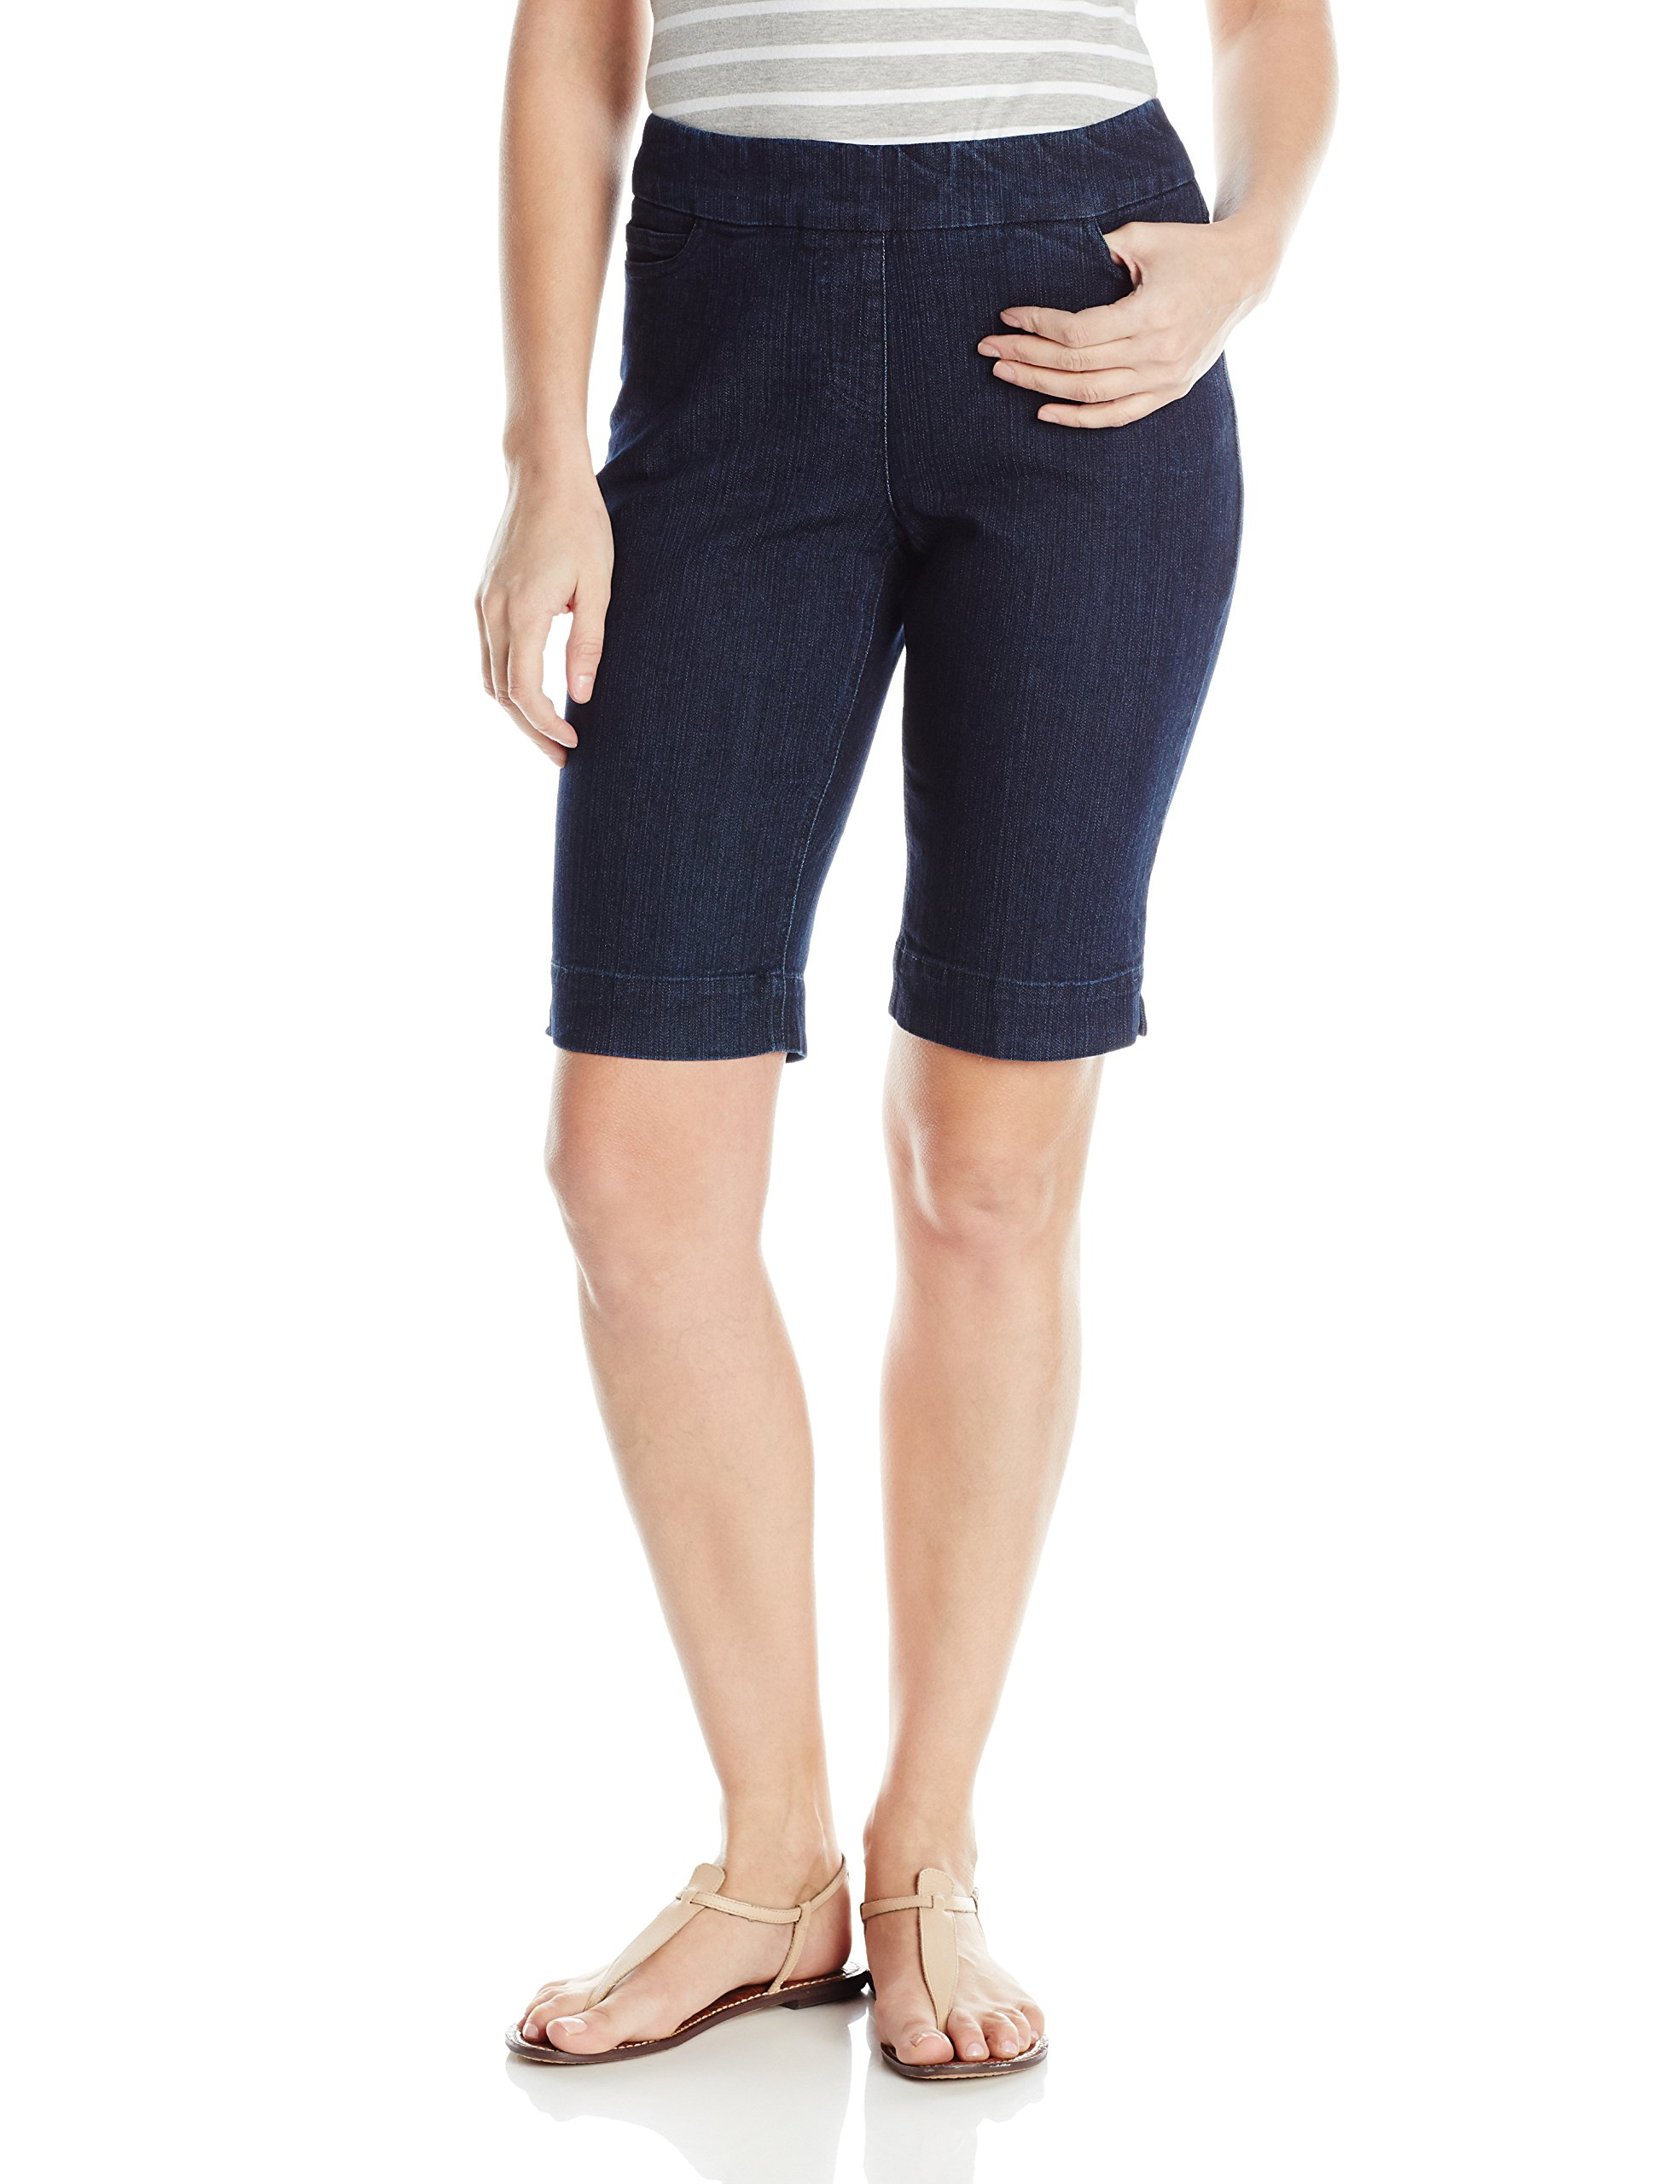 SLIM-SATION Women's Wide Band Pull-on Solid Walking Short, Demin, 12